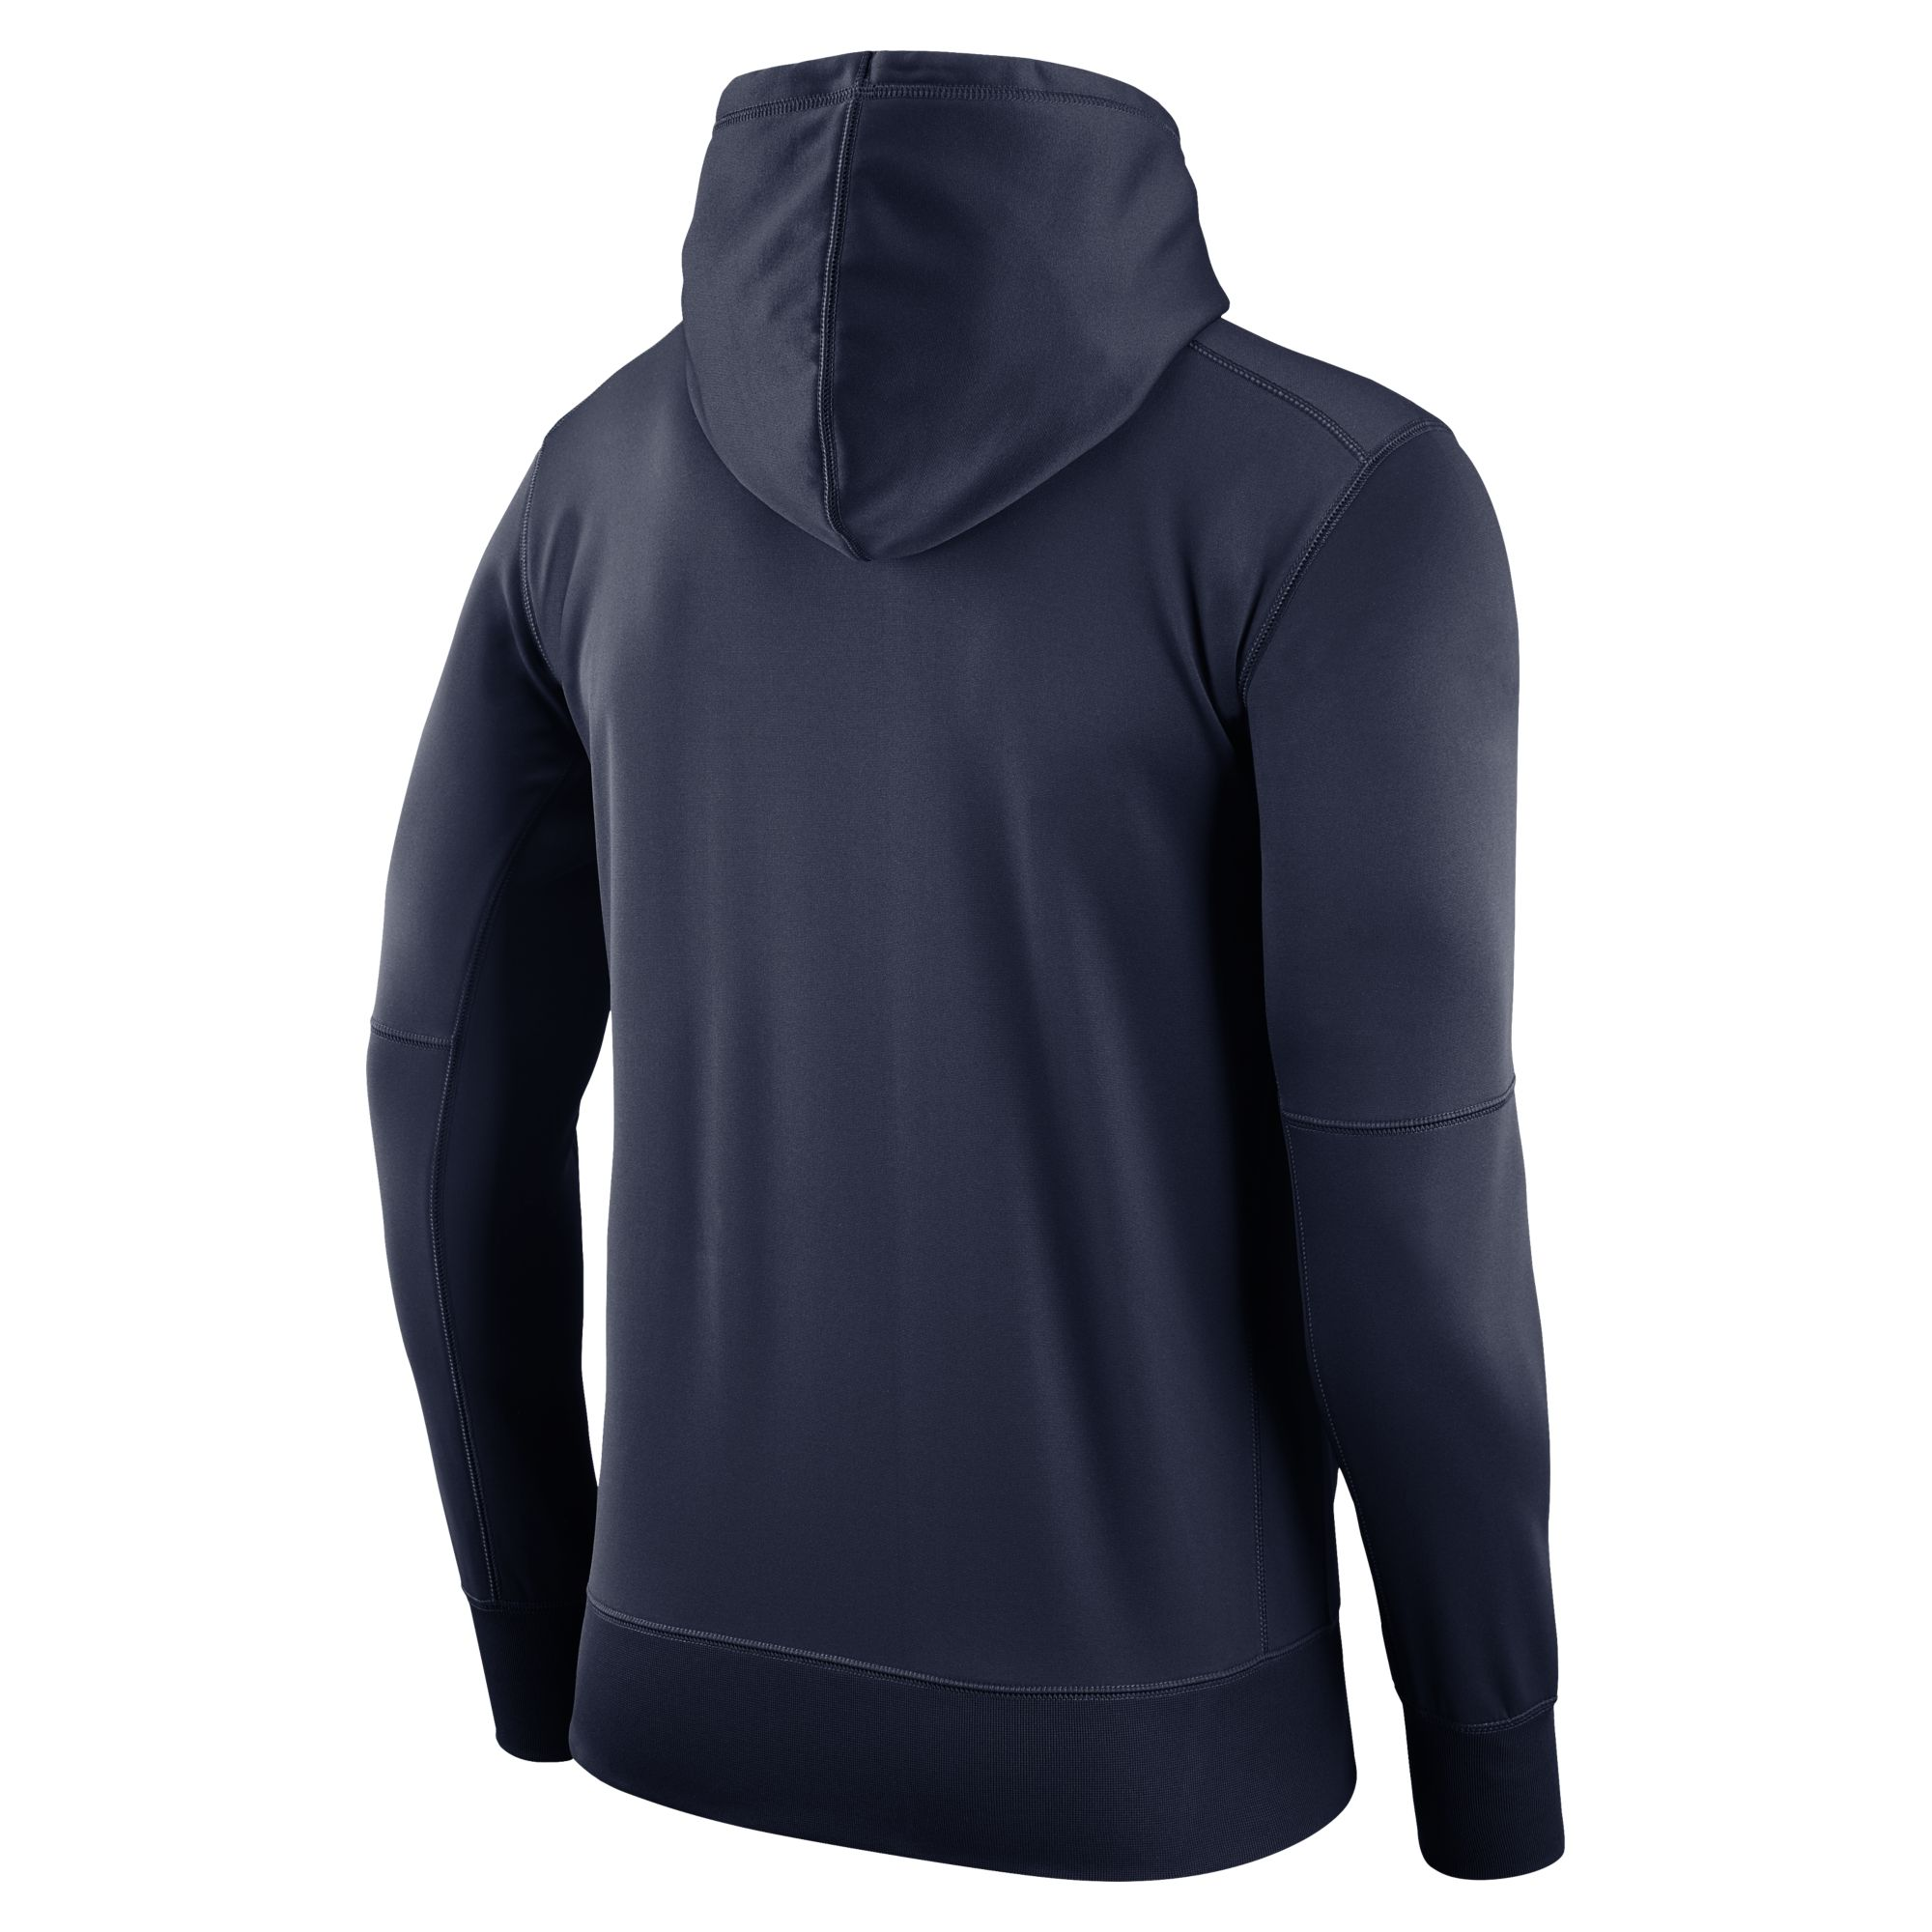 check out 84be9 453d0 Houston Astros Nike Fleece Pullover Performance Hoodie - Navy